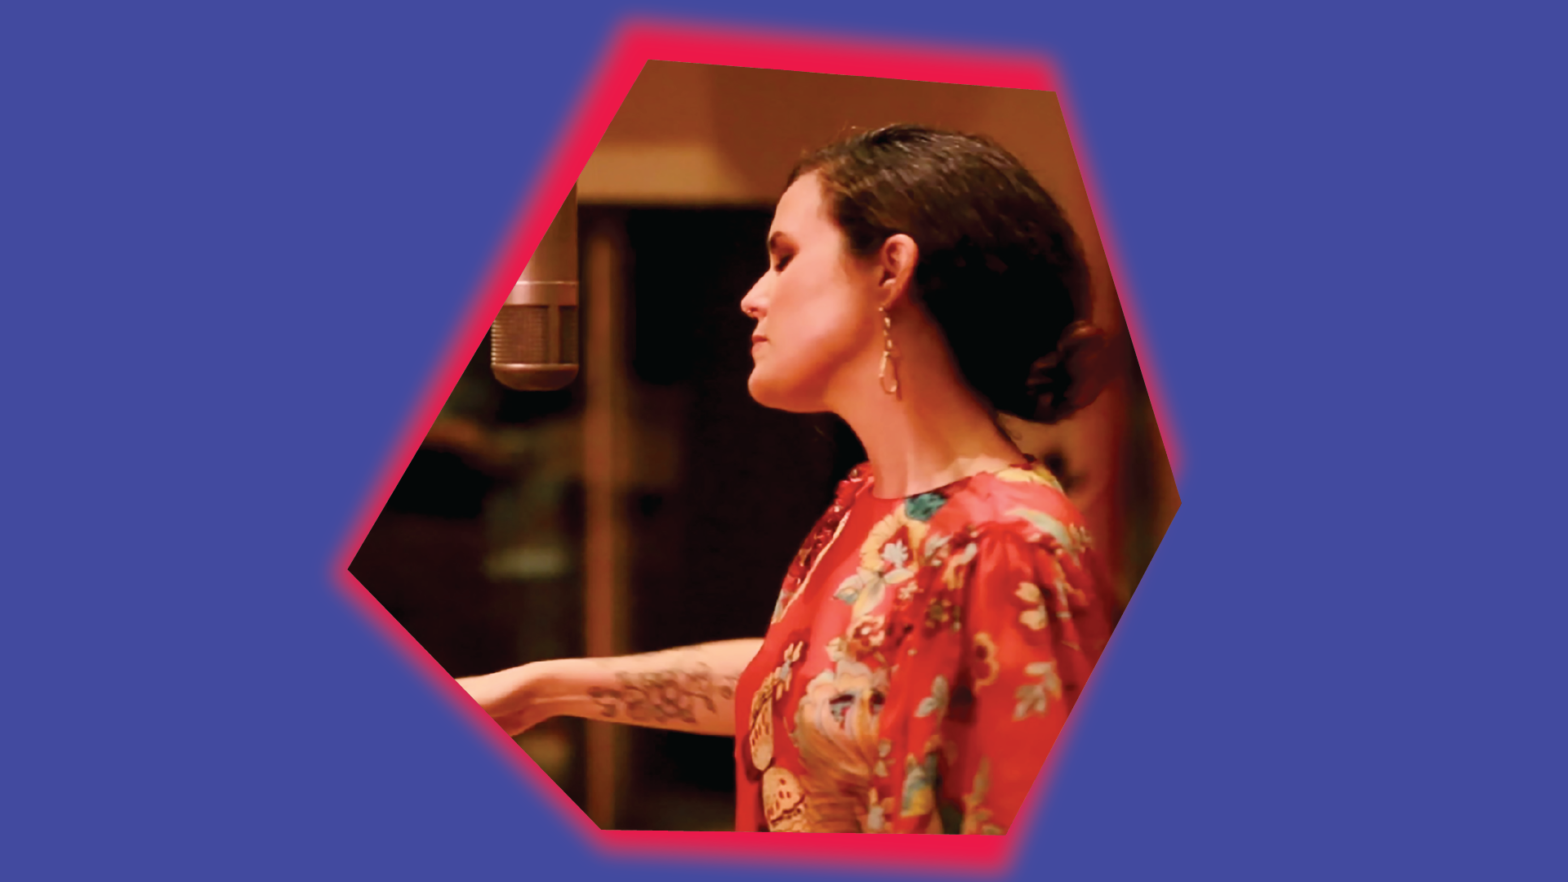 Photo of singer iskwe singing in the studio. Her photo is embedded within a rhombus asymmetrical shape with a pink glow behind it on top of a purple background.